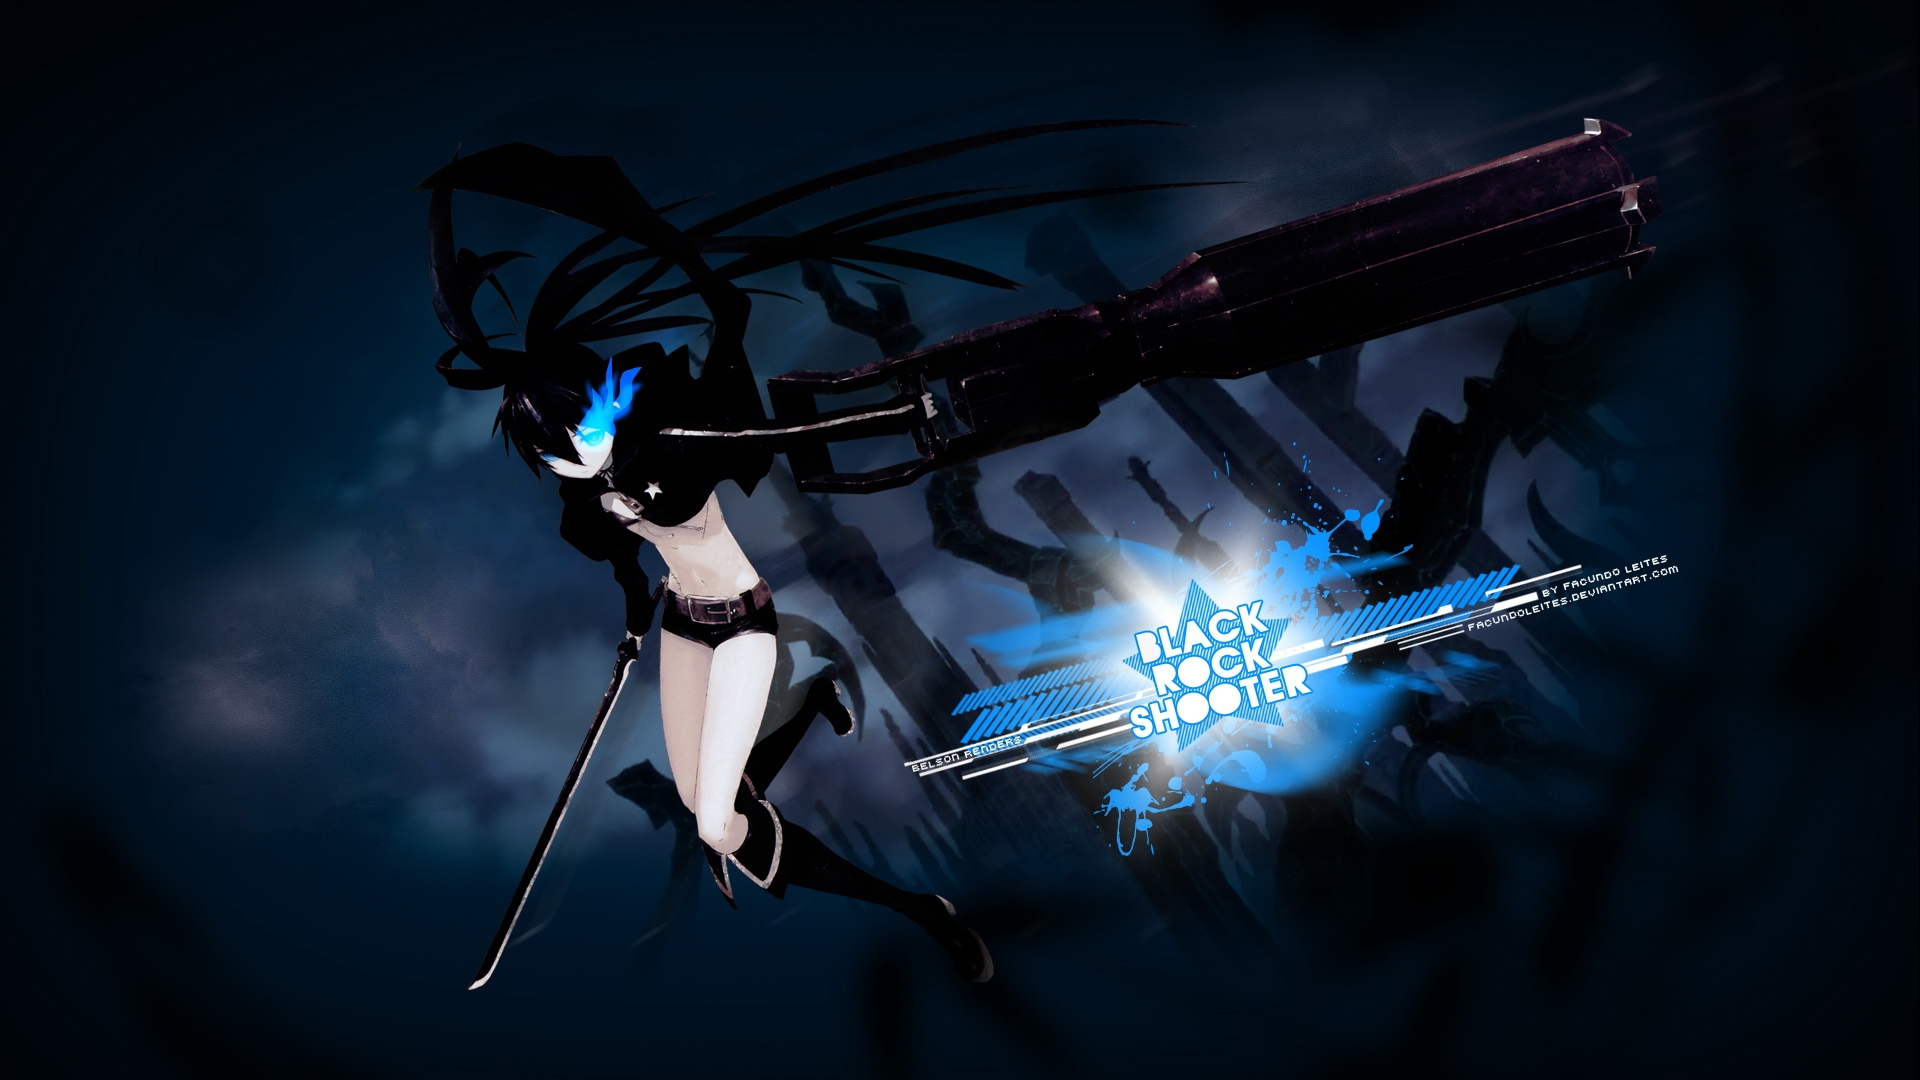 Black Rock Shooter Wallpapers - WallpaperSafari